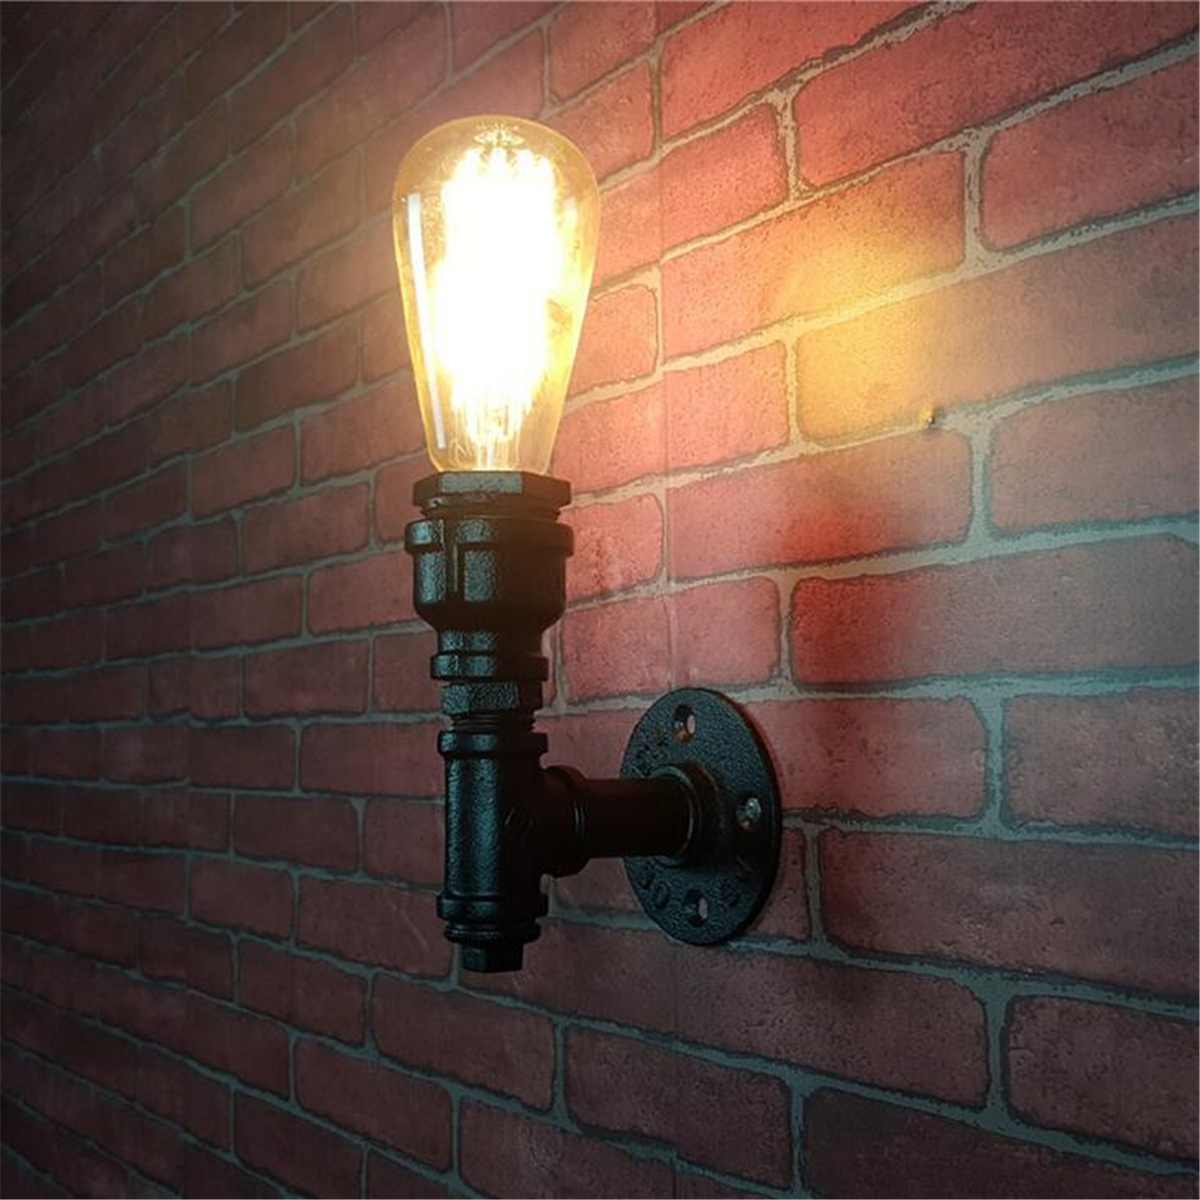 Bedroom Wall Lamp Home Lighting Decoration Industrial Vintage Water Pipe Porch Wall Sconce Lamp Wall Light FixtureBedroom Wall Lamp Home Lighting Decoration Industrial Vintage Water Pipe Porch Wall Sconce Lamp Wall Light Fixture